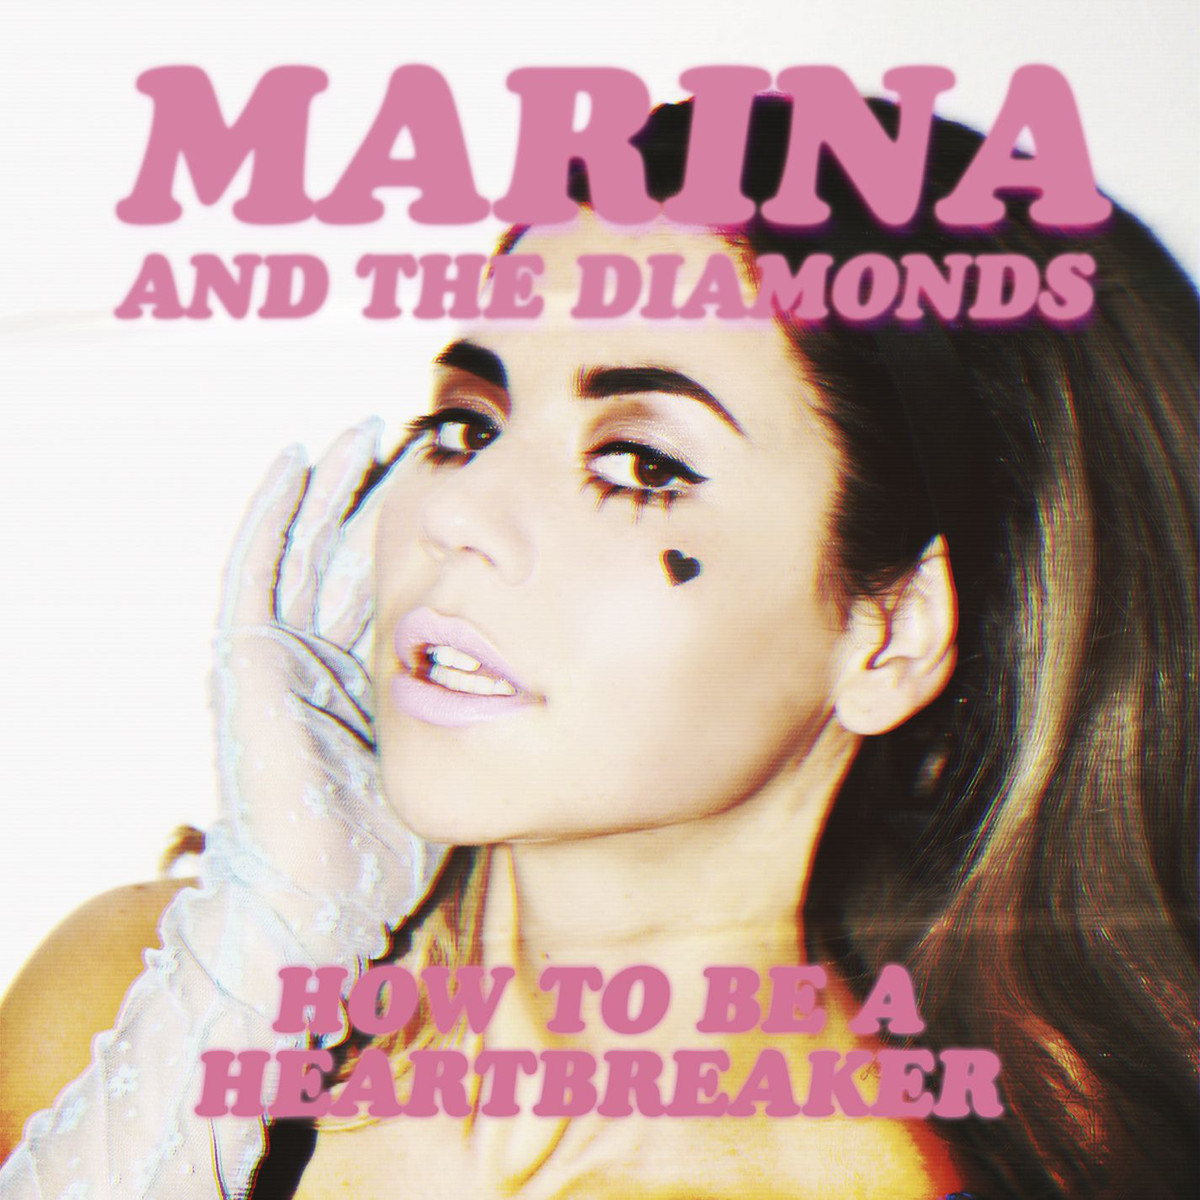 Single Review: Marina And The Diamondshow To Be A Heartbreaker Second Single  Review: Marina